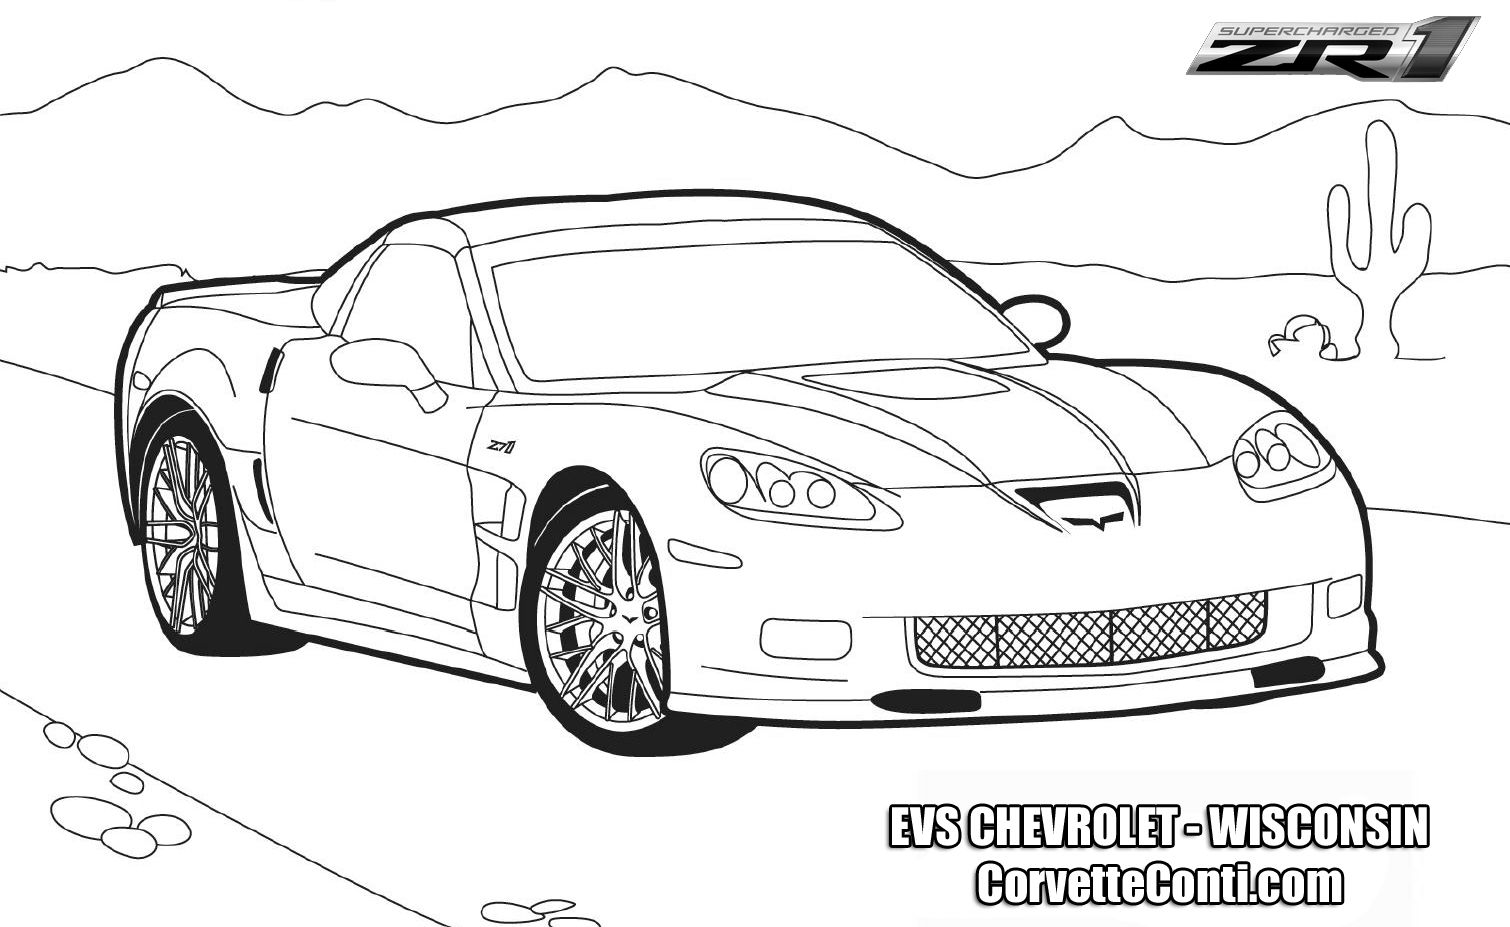 corvette coloring pages Image result for corvette coloring pages | C   Arts & Crafts  corvette coloring pages